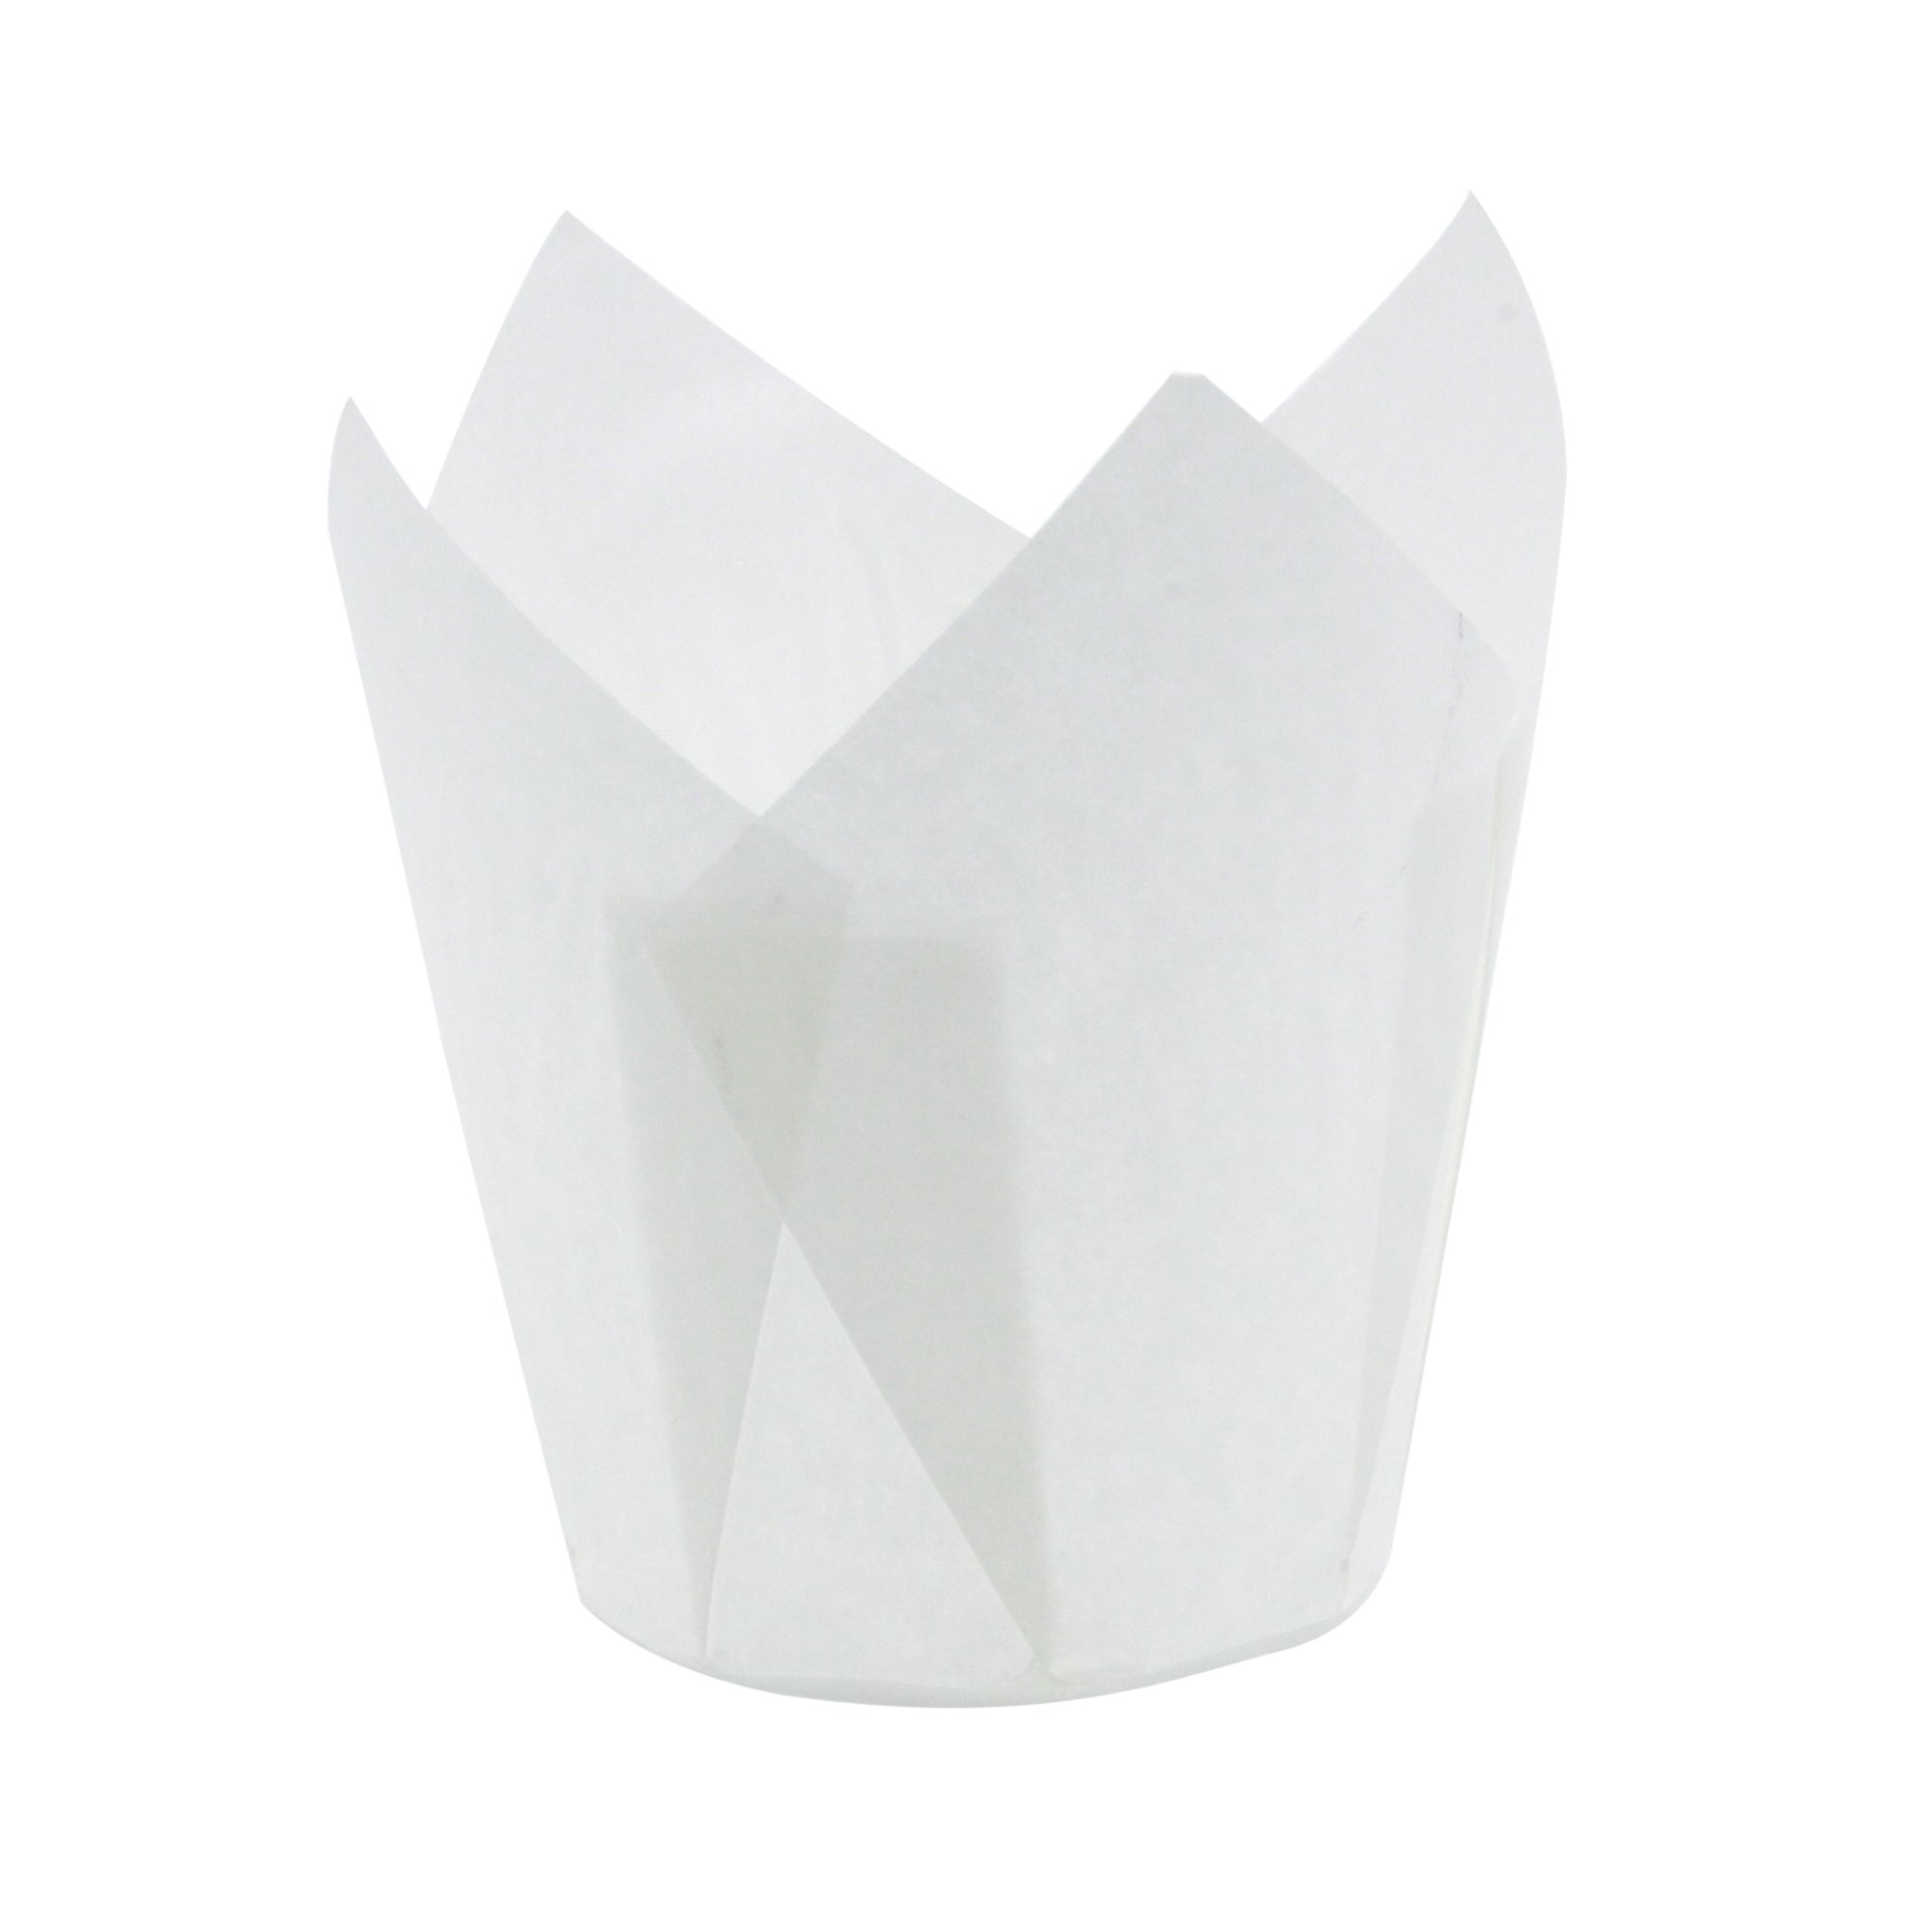 Ecobake White Tulip Baking Cups, Extra Large, Pack of 2000 - Style 717550